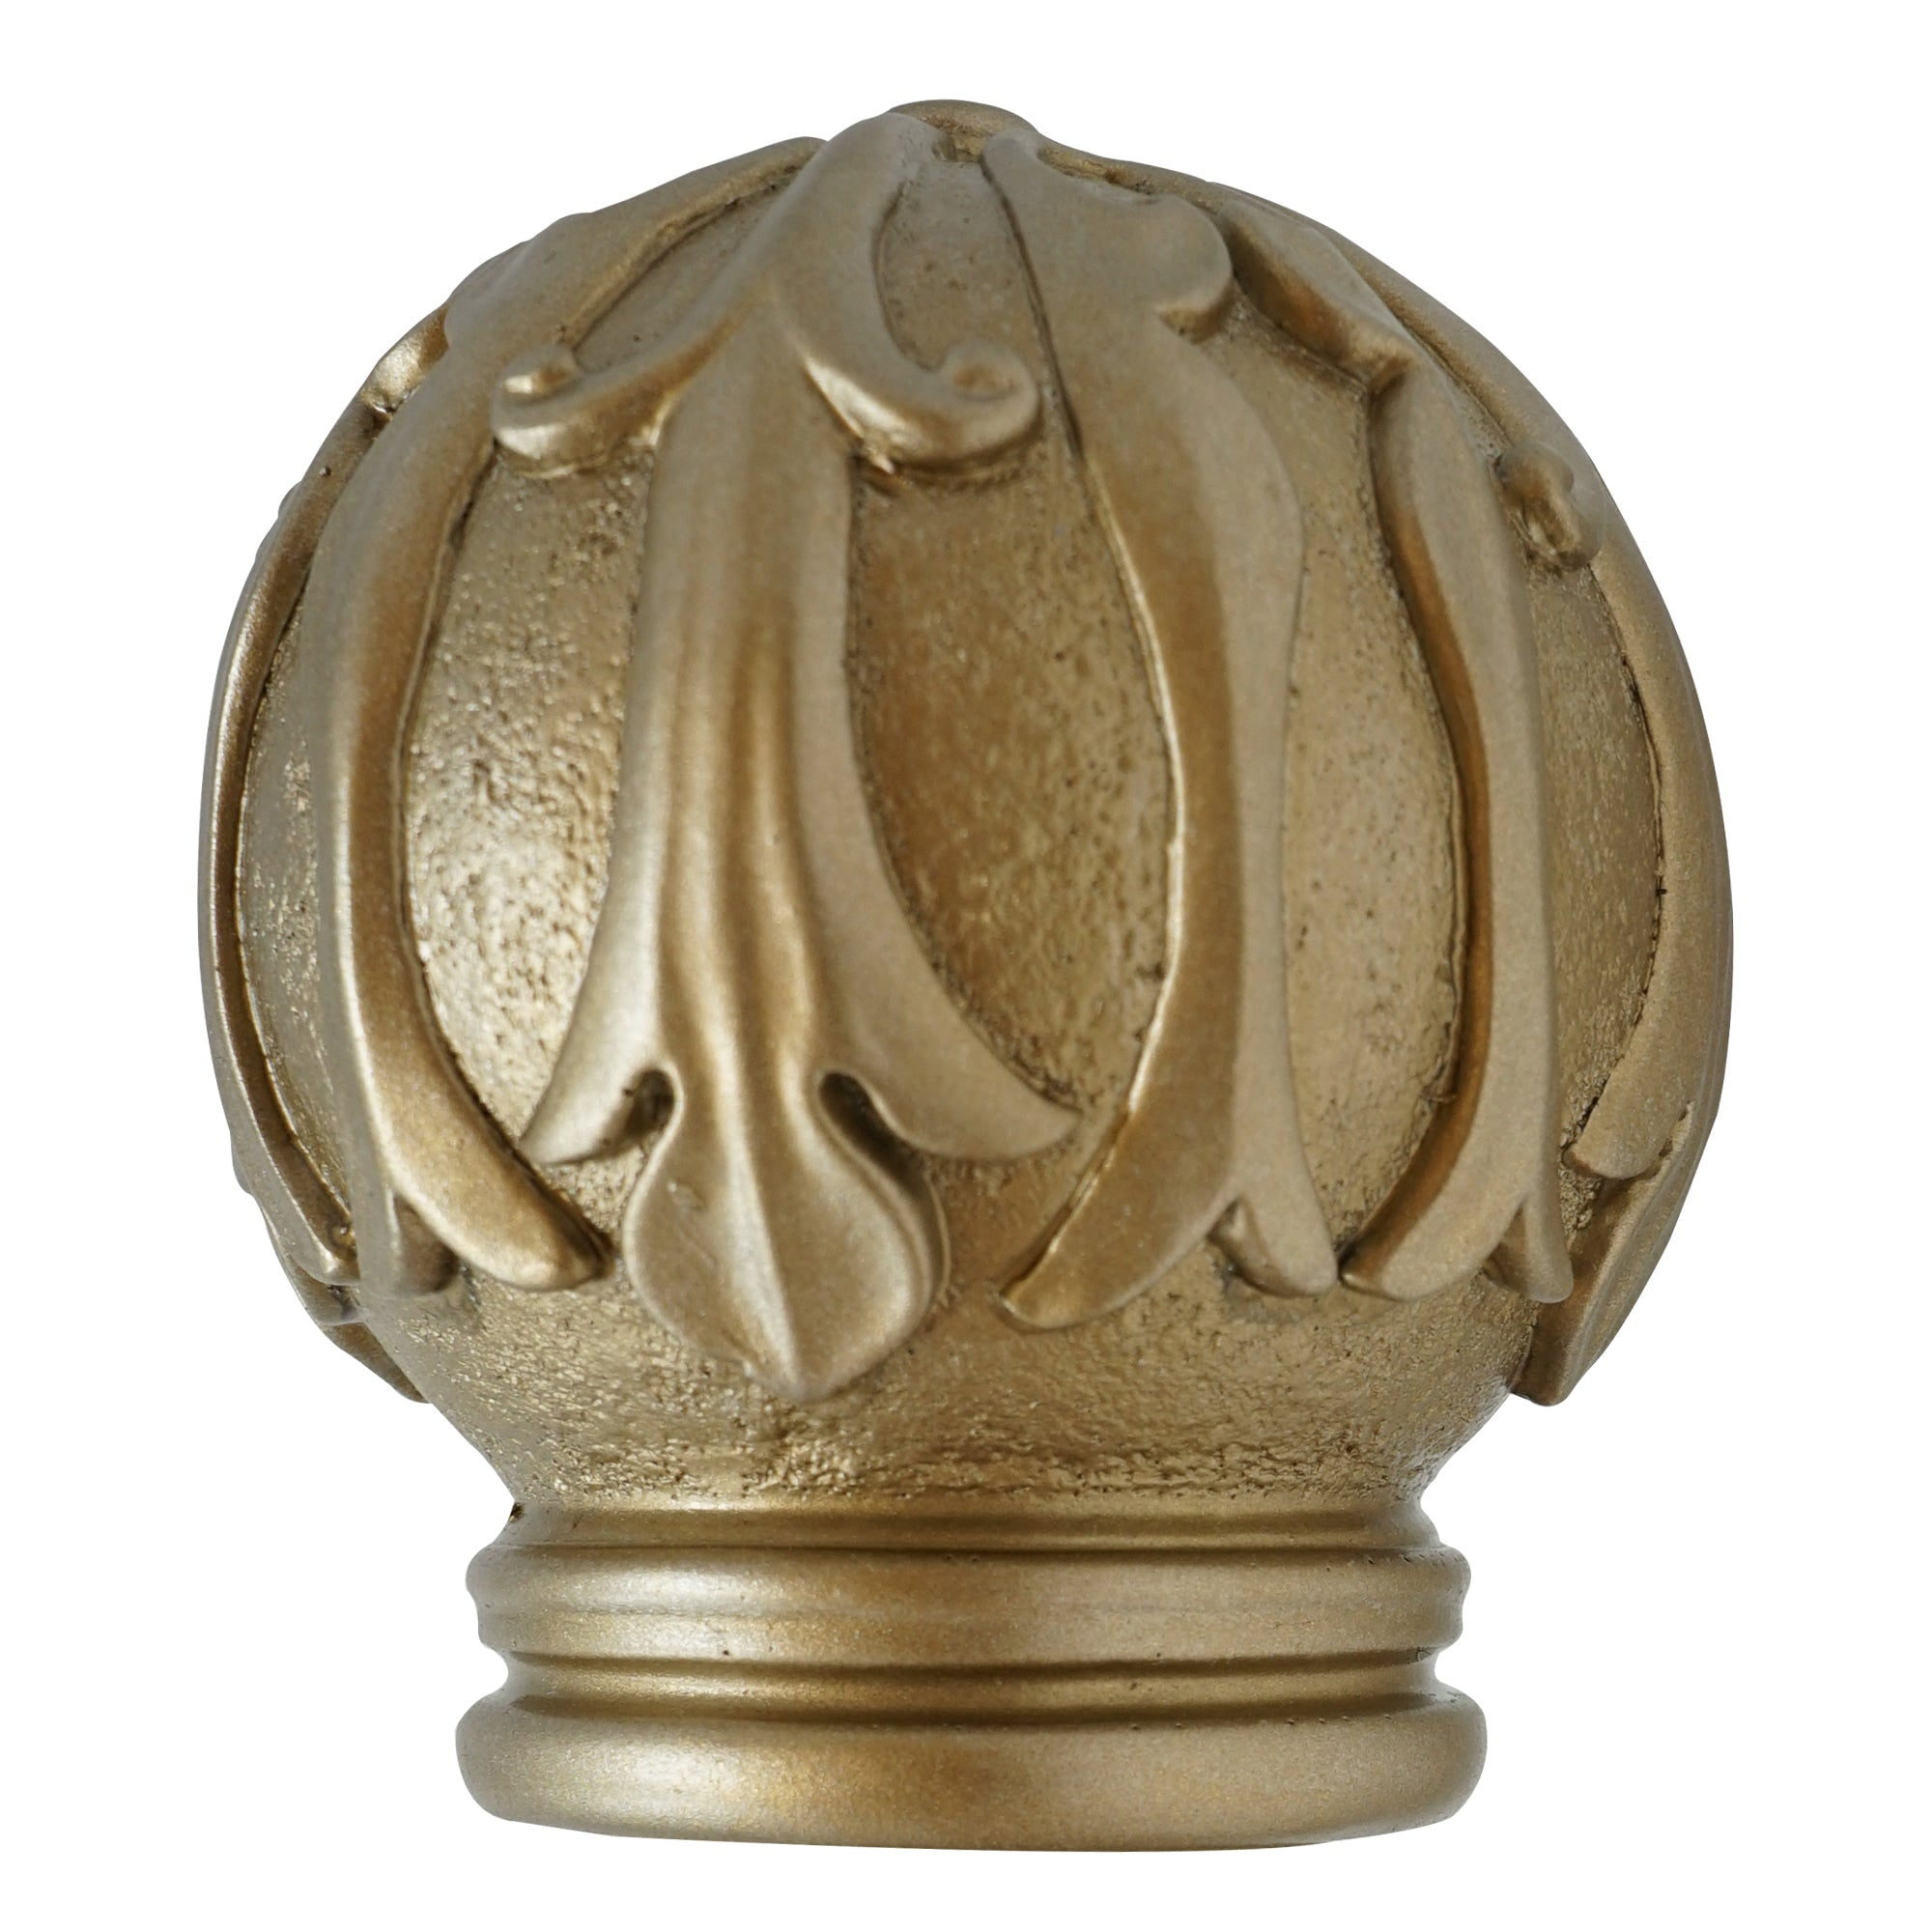 Wood Finial - Champagne Finish